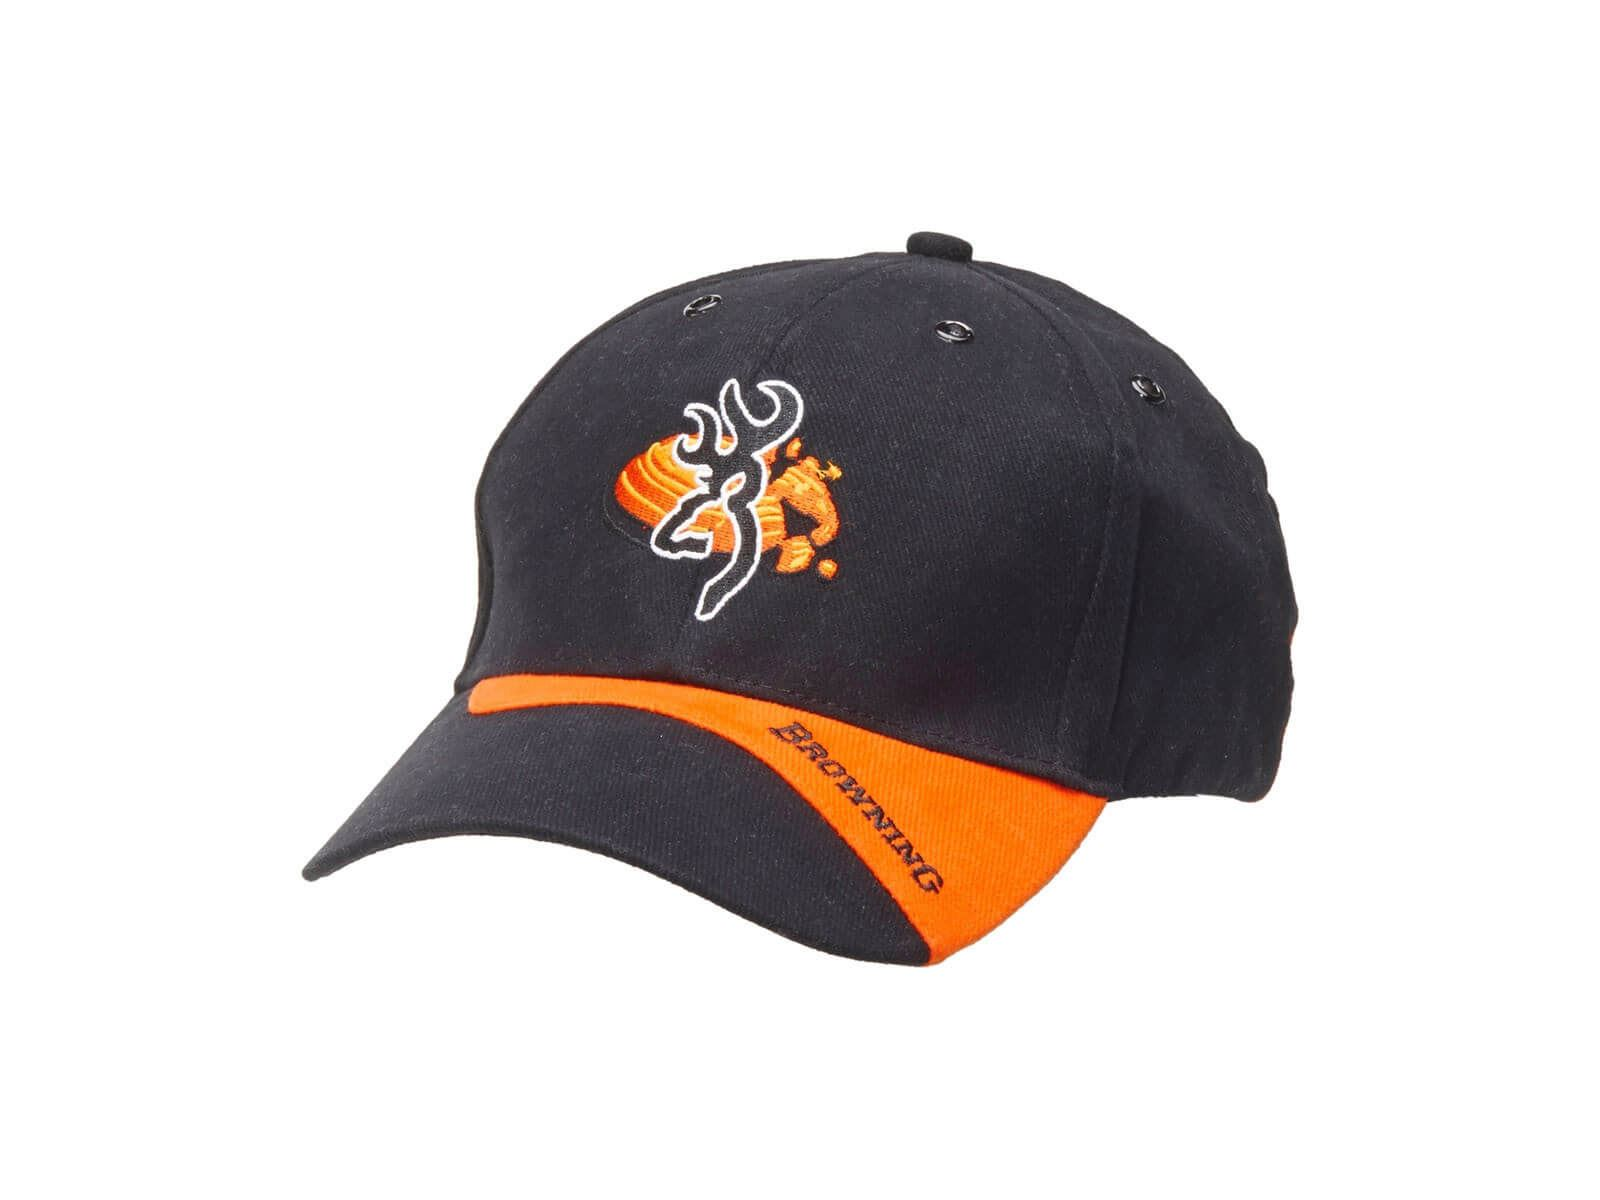 b014e391172bf5 Details about Browning Cap Claybuster Black Orange clay shooting ,hat,basball  cap